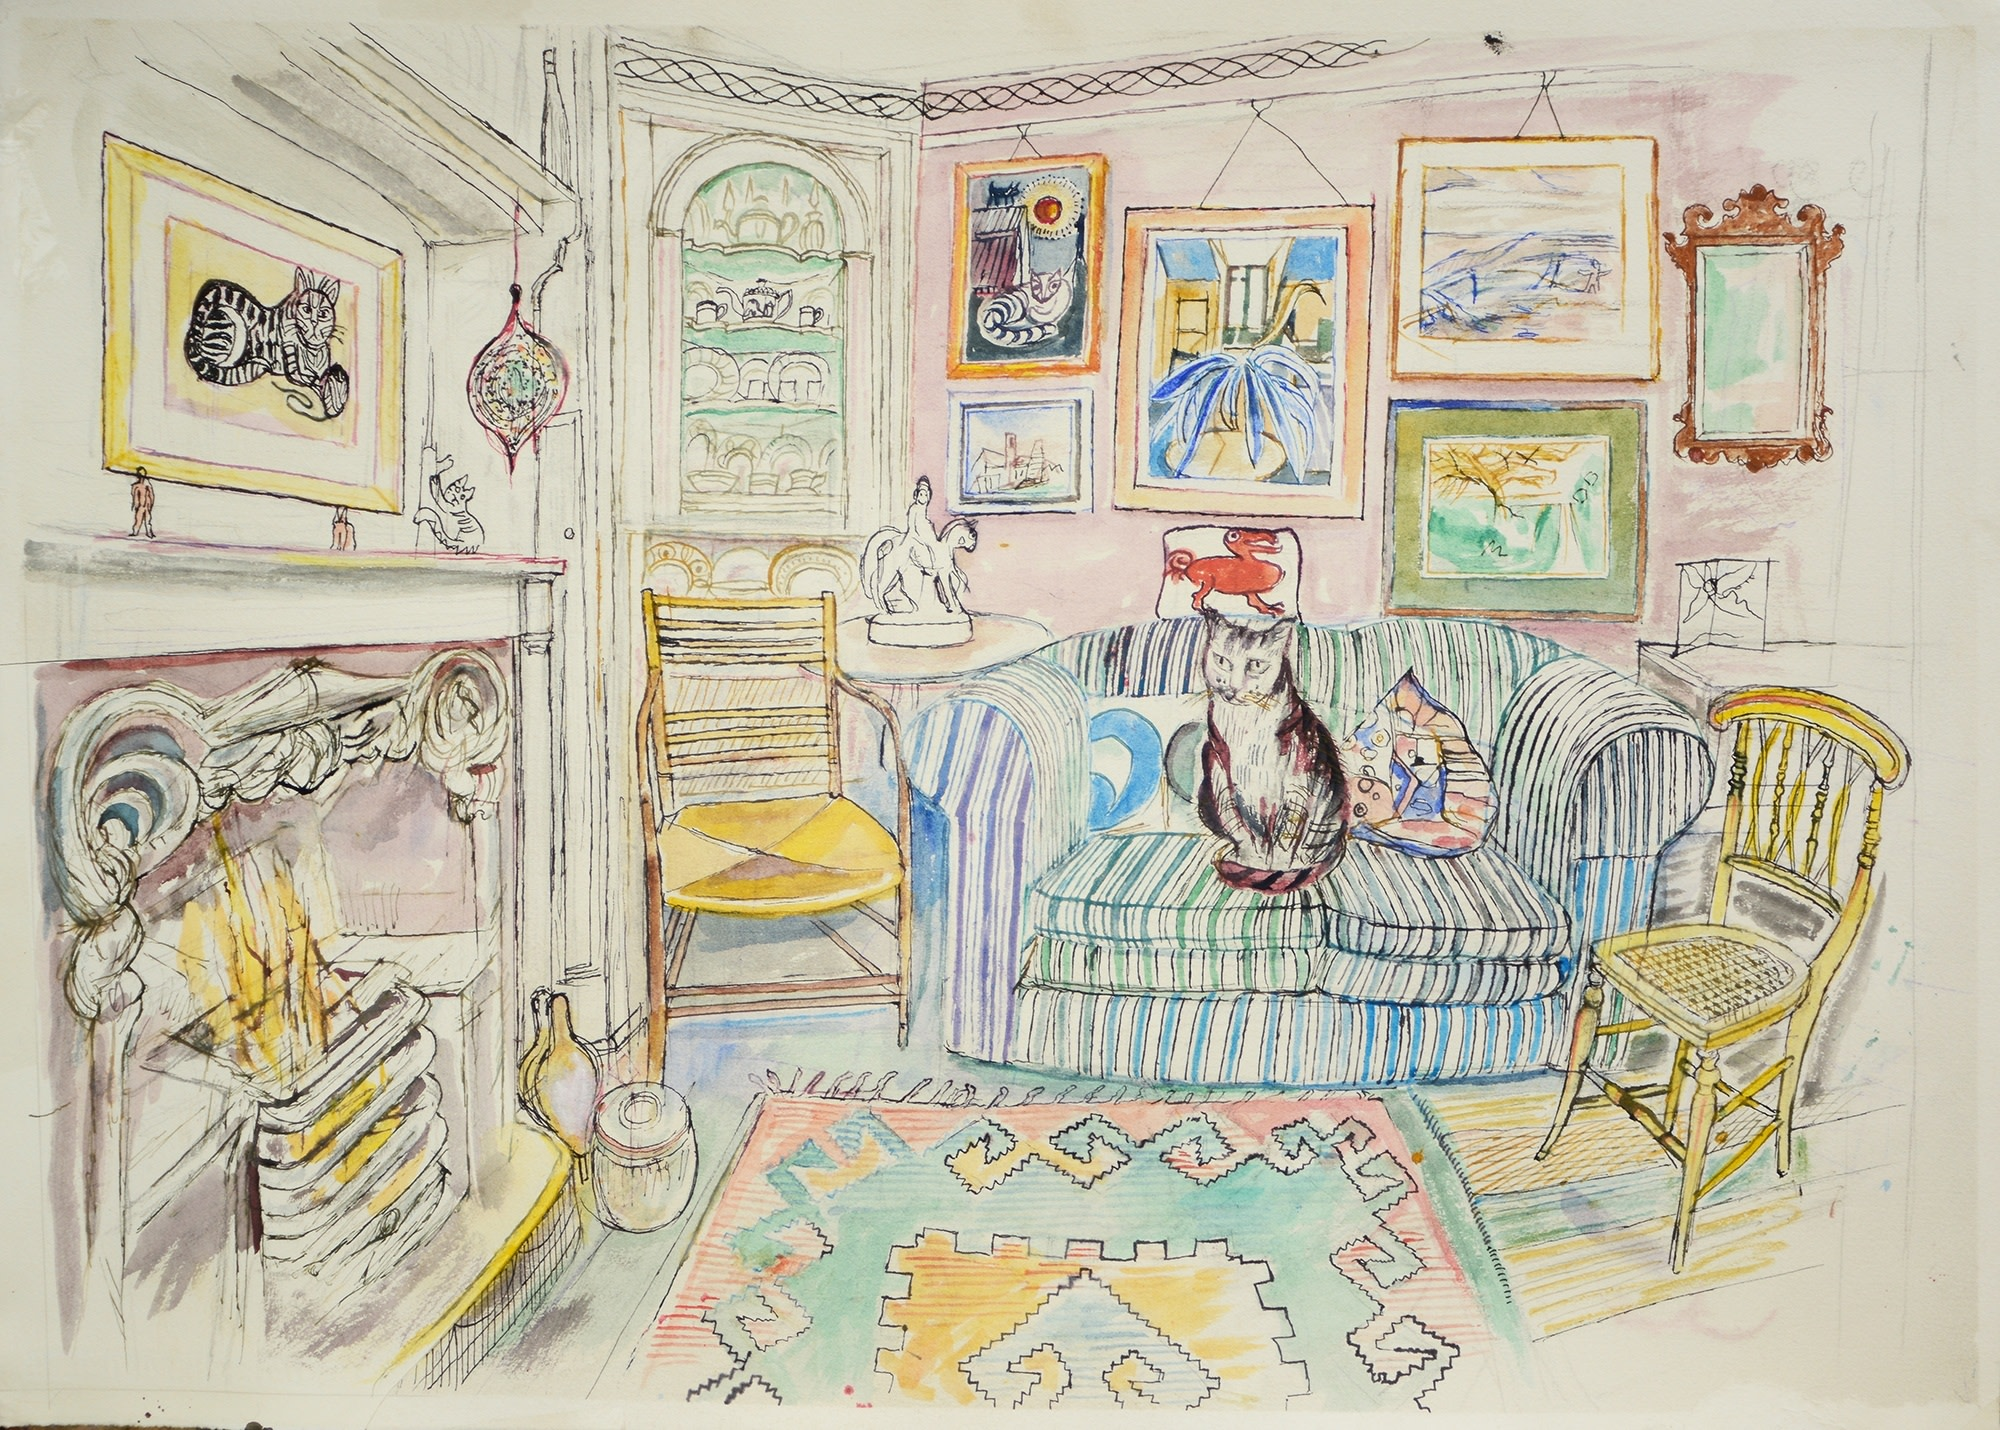 <span class=&#34;link fancybox-details-link&#34;><a href=&#34;/artists/38-richard-bawden/works/10686-richard-bawden-sitting-room-by-the-fire/&#34;>View Detail Page</a></span><div class=&#34;artist&#34;><span class=&#34;artist&#34;><strong>Richard Bawden</strong></span></div>